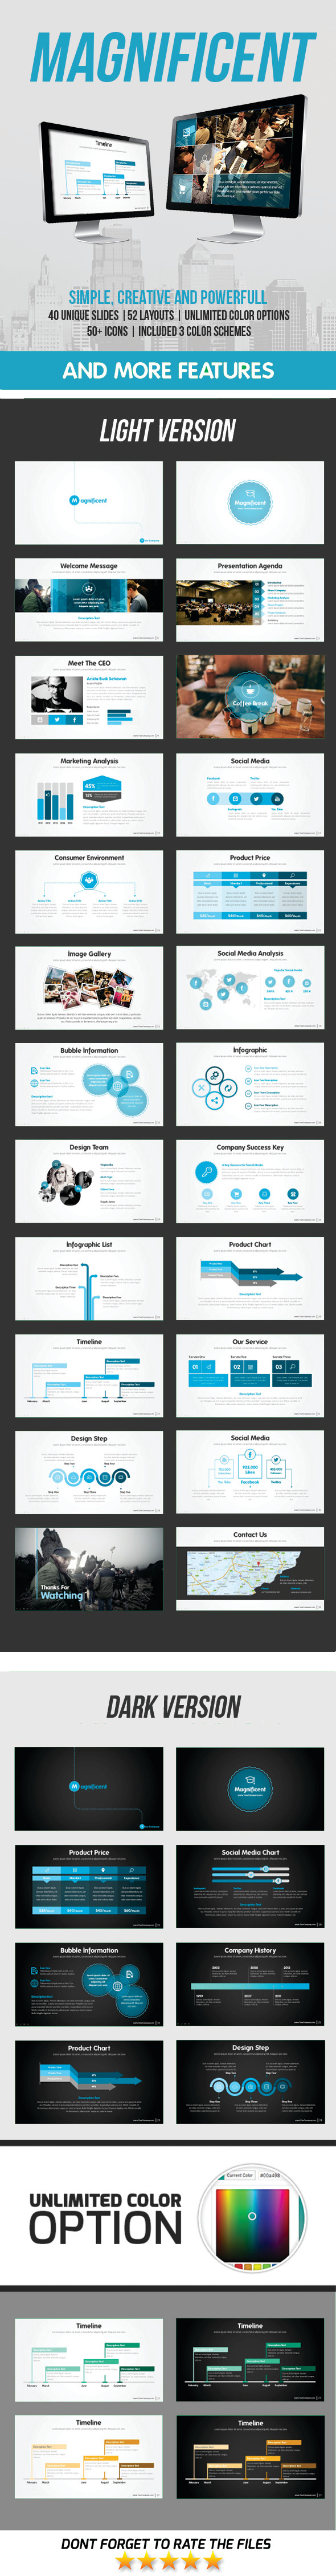 GraphicRiver Magnificent PowerPoint Template 11811213